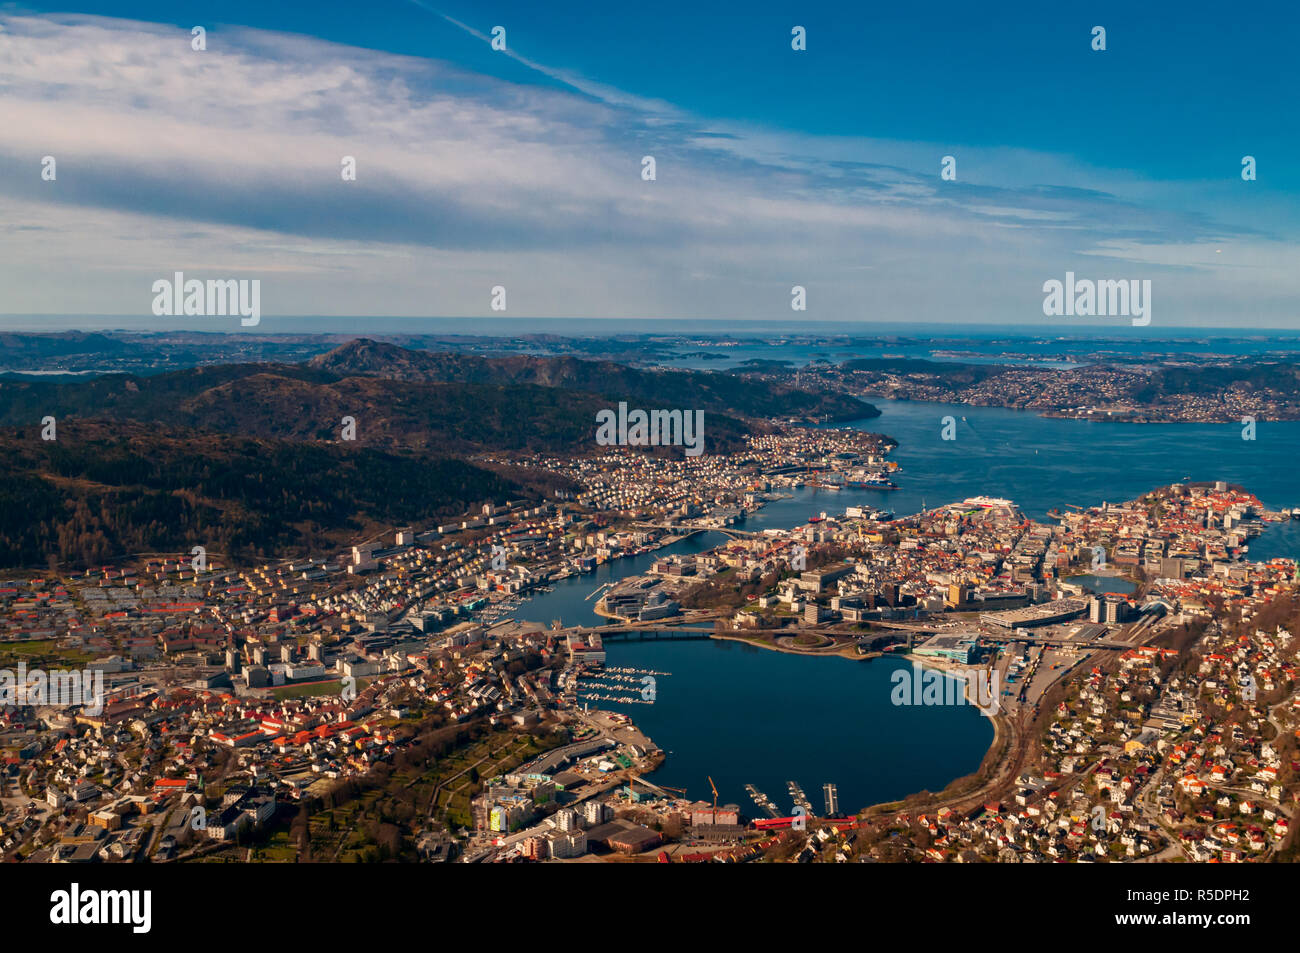 A birds eye view over the beautiful city of Bergen in Norway on a sunny day. - Stock Image